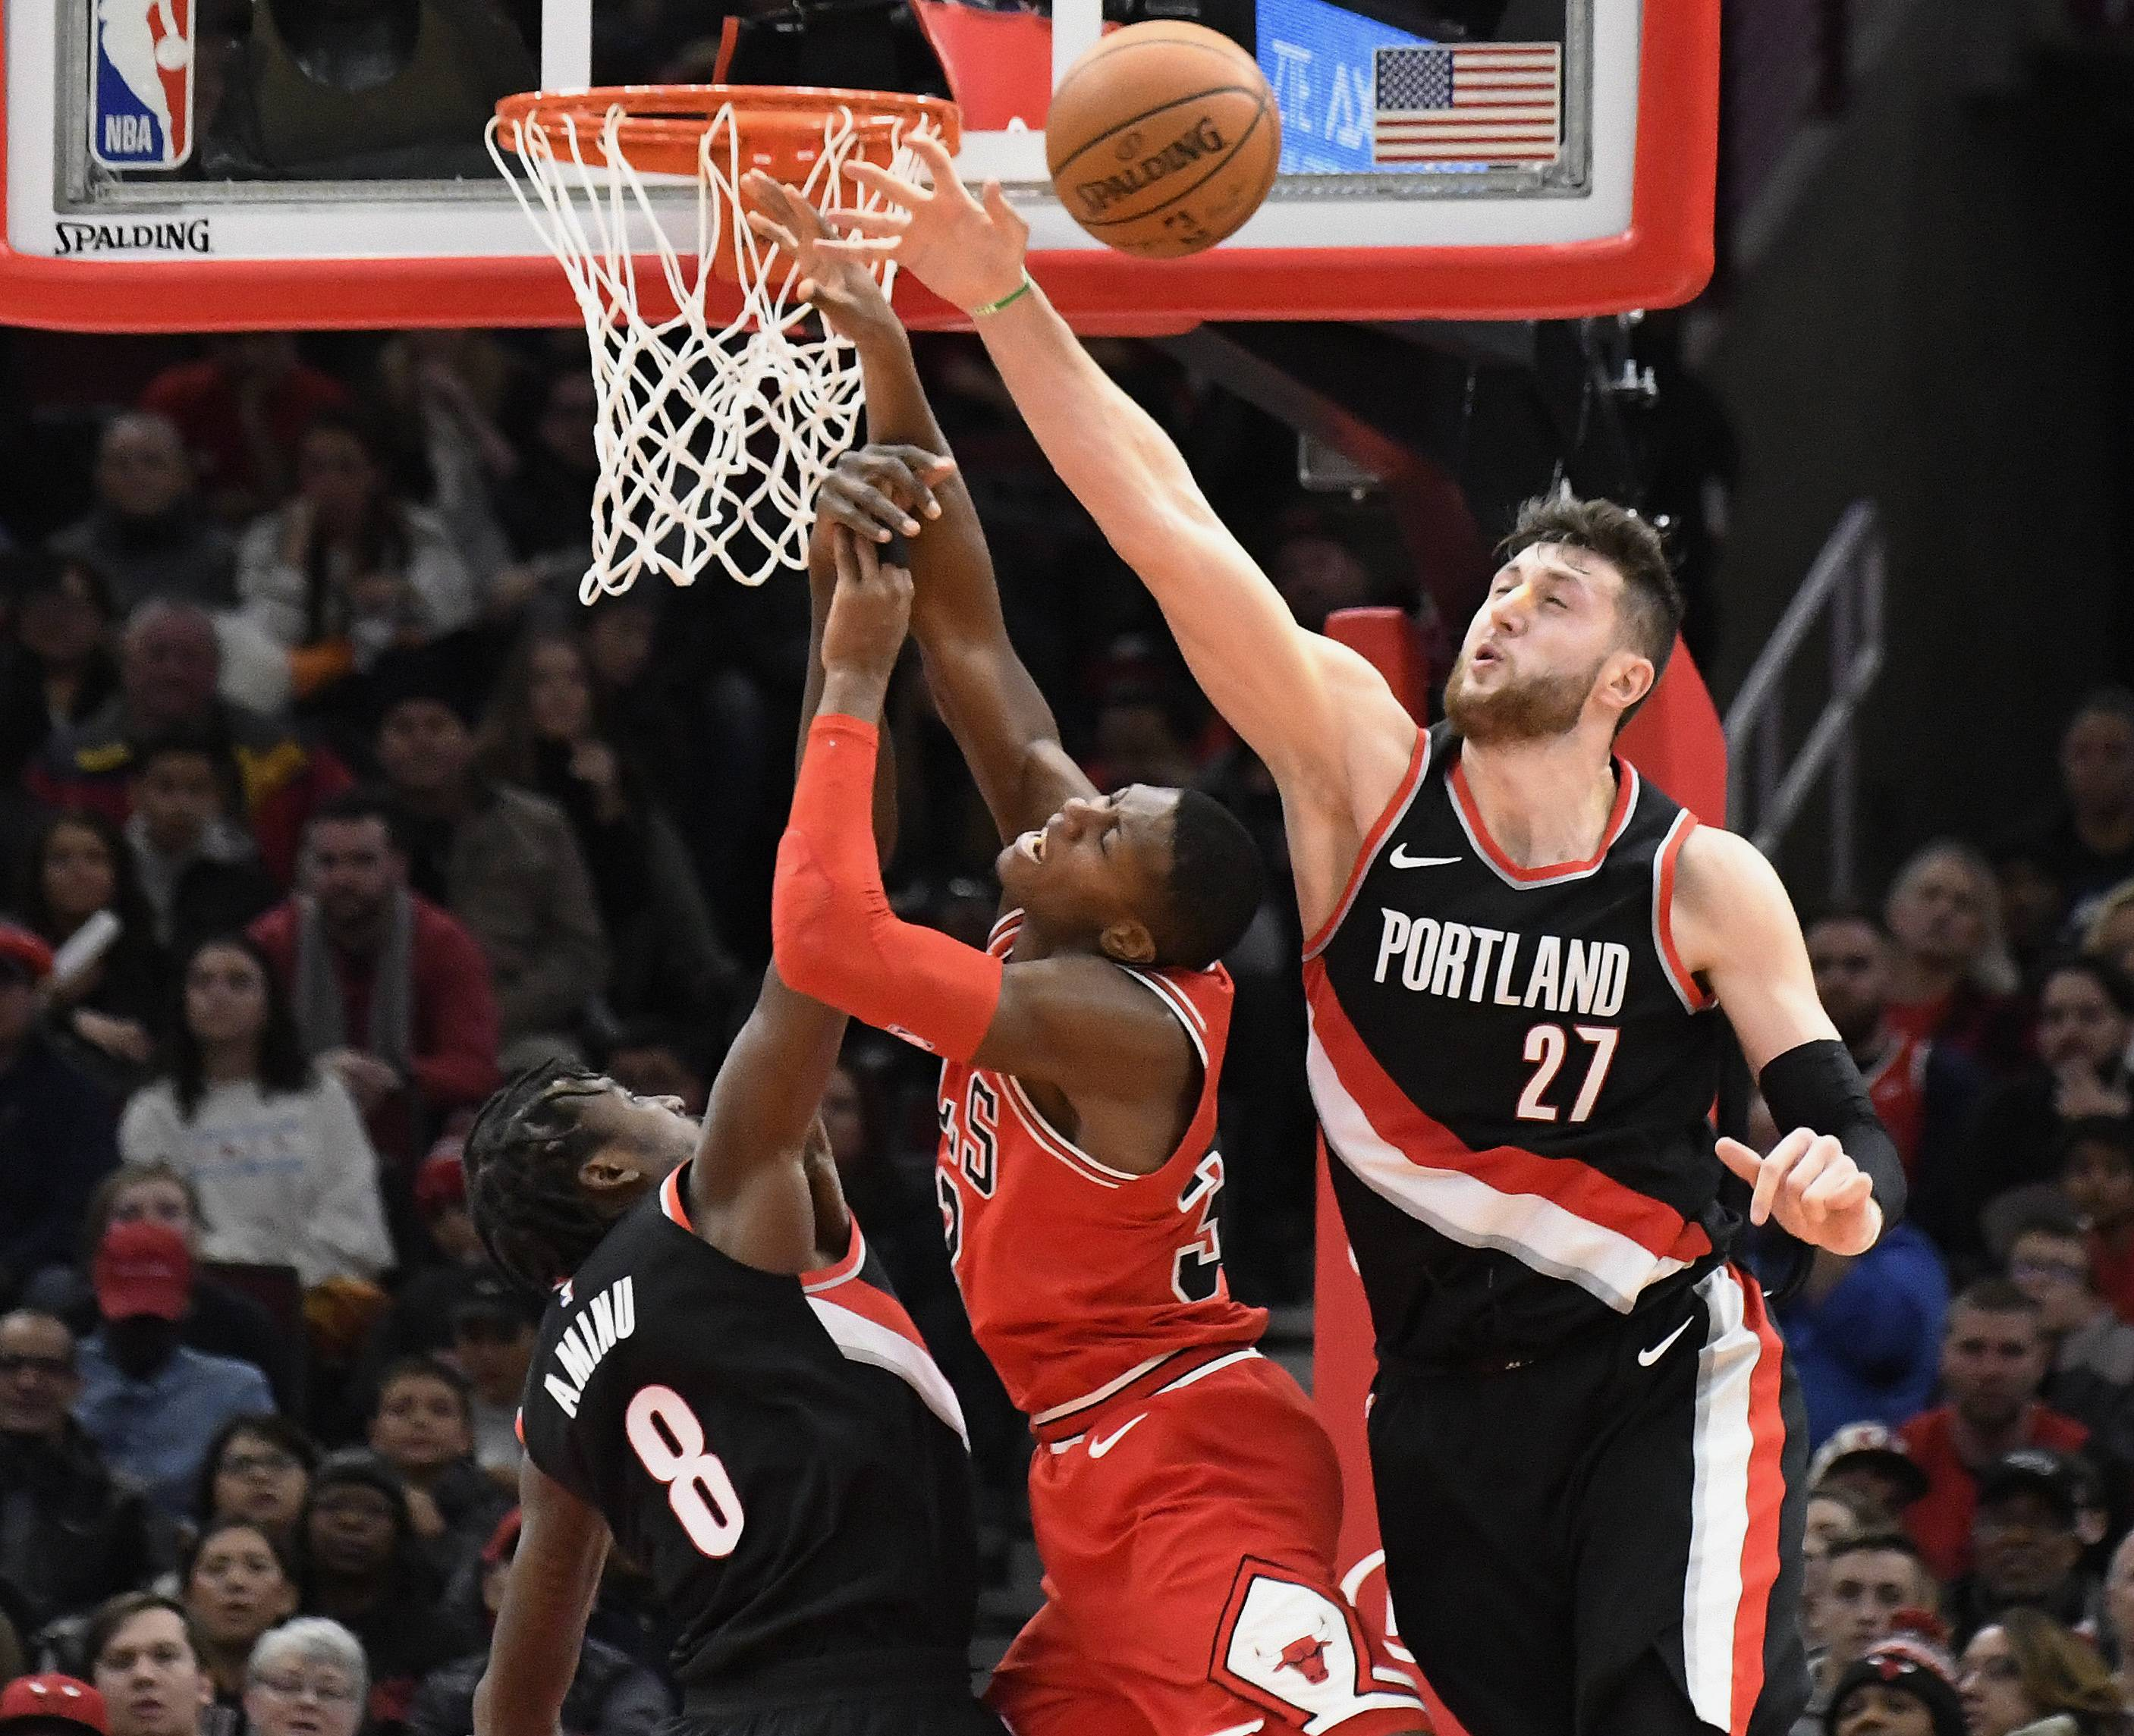 Portland Trail Blazers center Jusuf Nurkic (27) forward Al-Farouq Aminu (8) defend Chicago Bulls guard Kris Dunn, center, during the second half of an NBA basketball game, Monday, Jan. 1, 2018, in Chicago. The Trail Blazers won 124-120 in overtime. (AP Photo/David Banks)